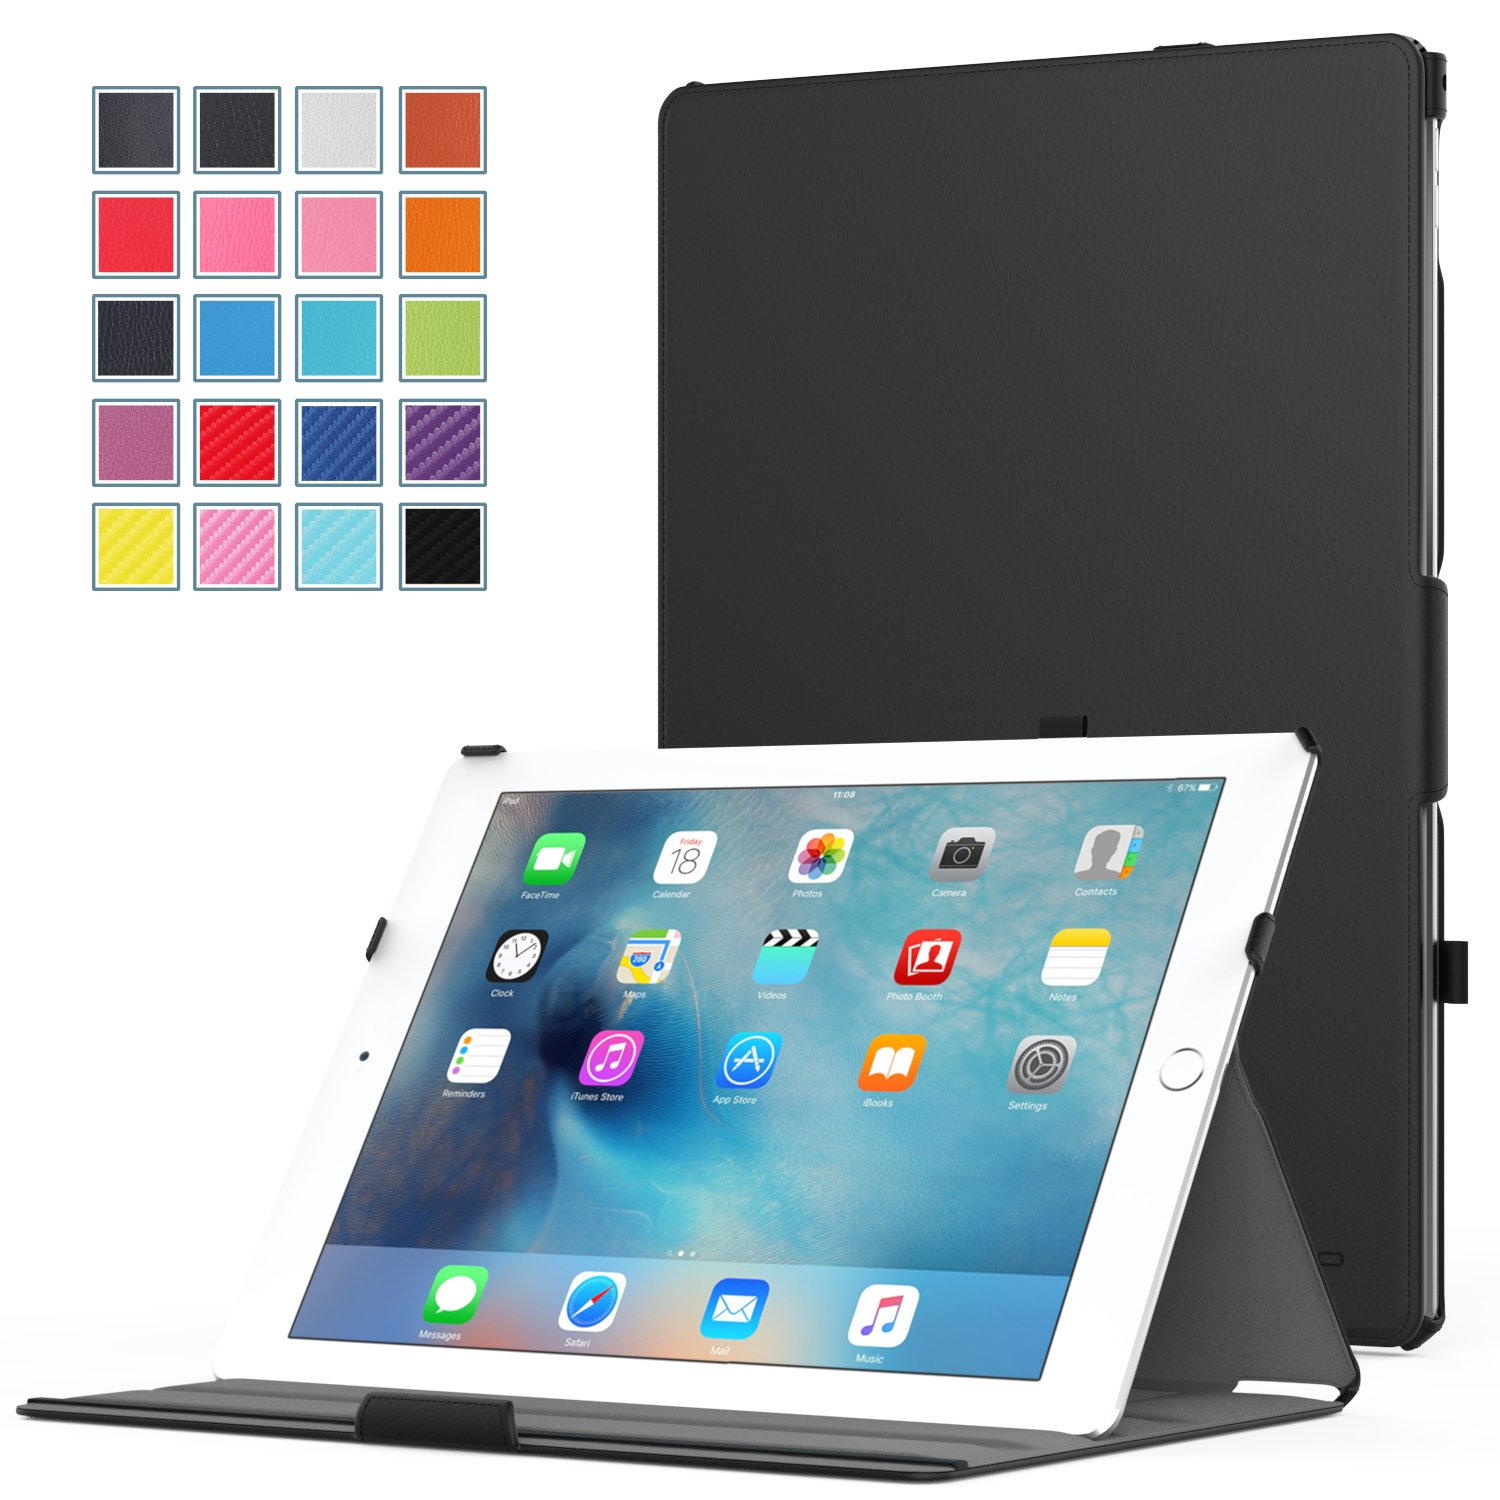 iPad Pro Case - MoKo Slim-Fit Multi-angle Folio Cover Case for Apple iPad Pro 12.9 Inch iOS 9 2015 Release Tablet, BLACK